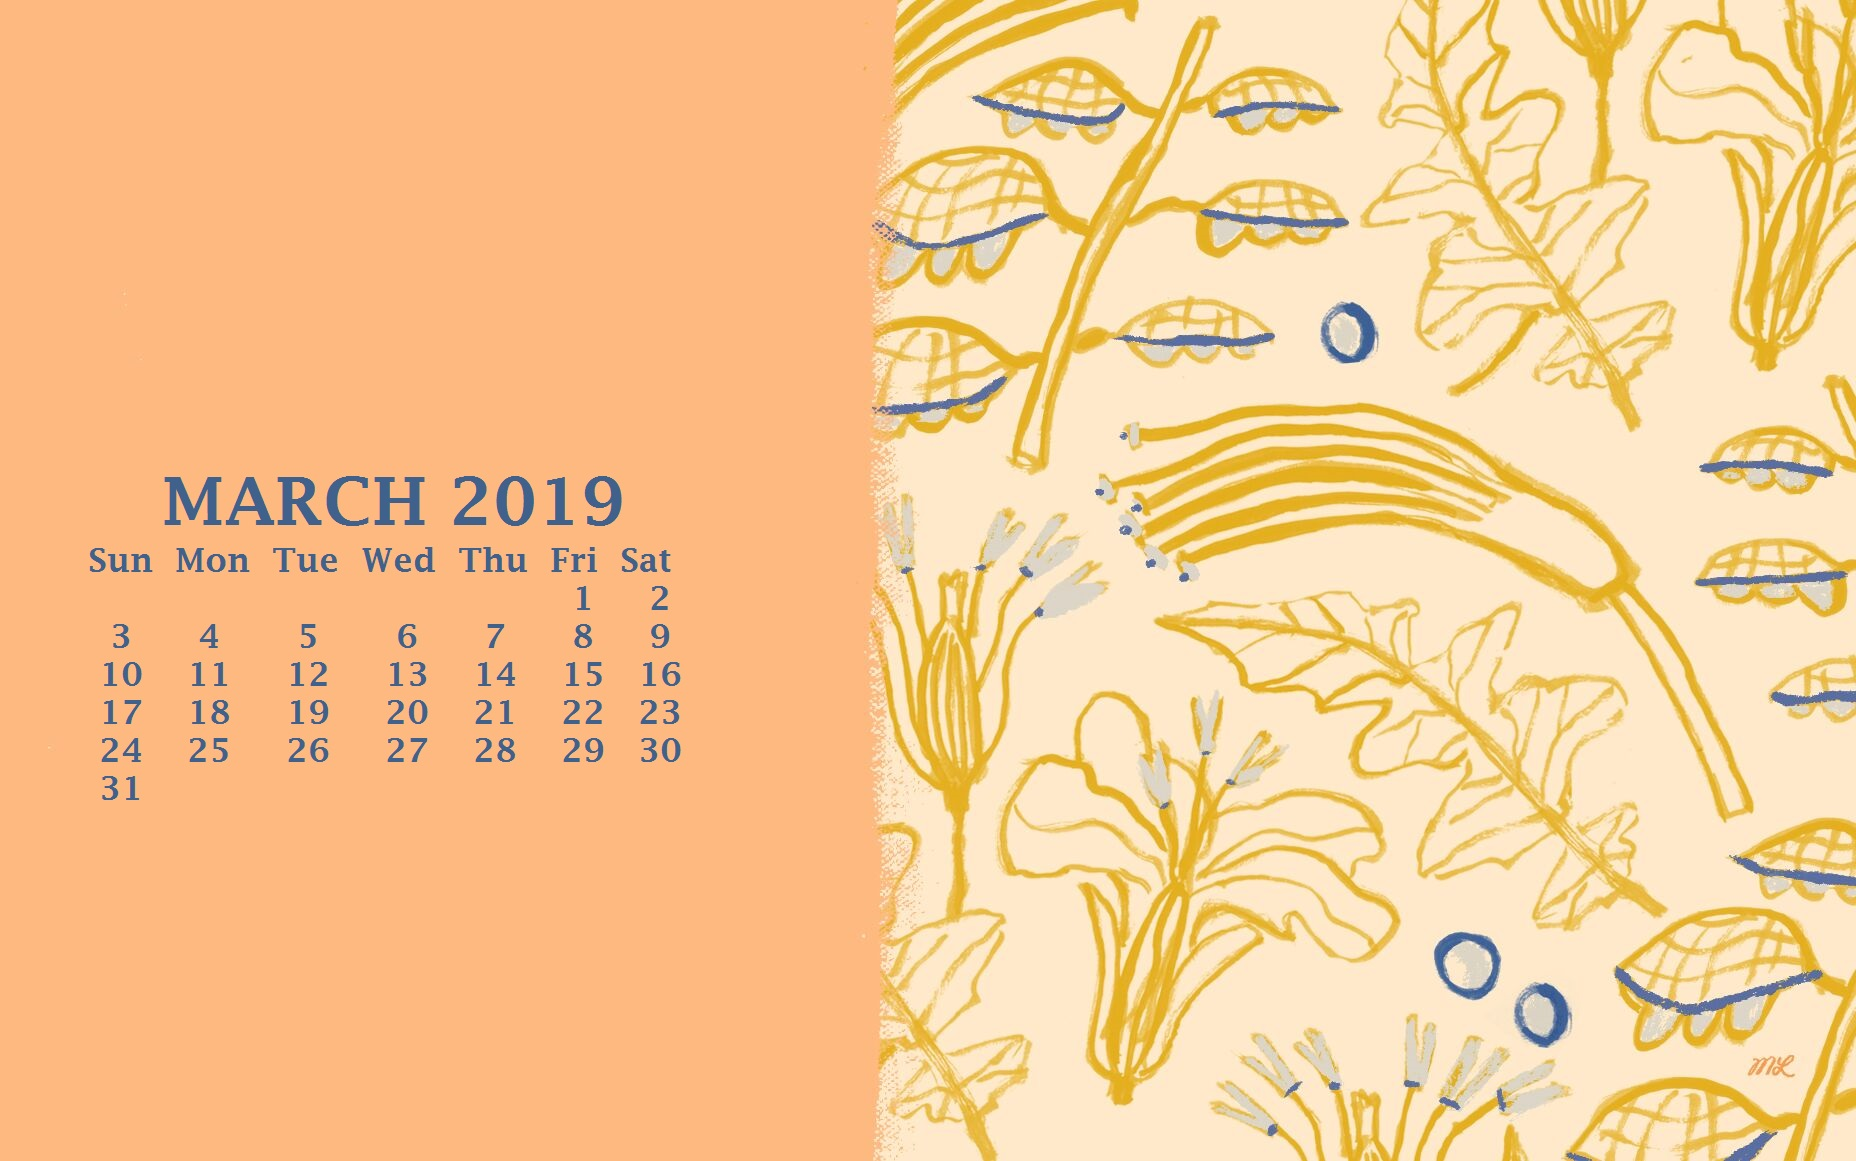 March 2019 Calendar For Desktop Background